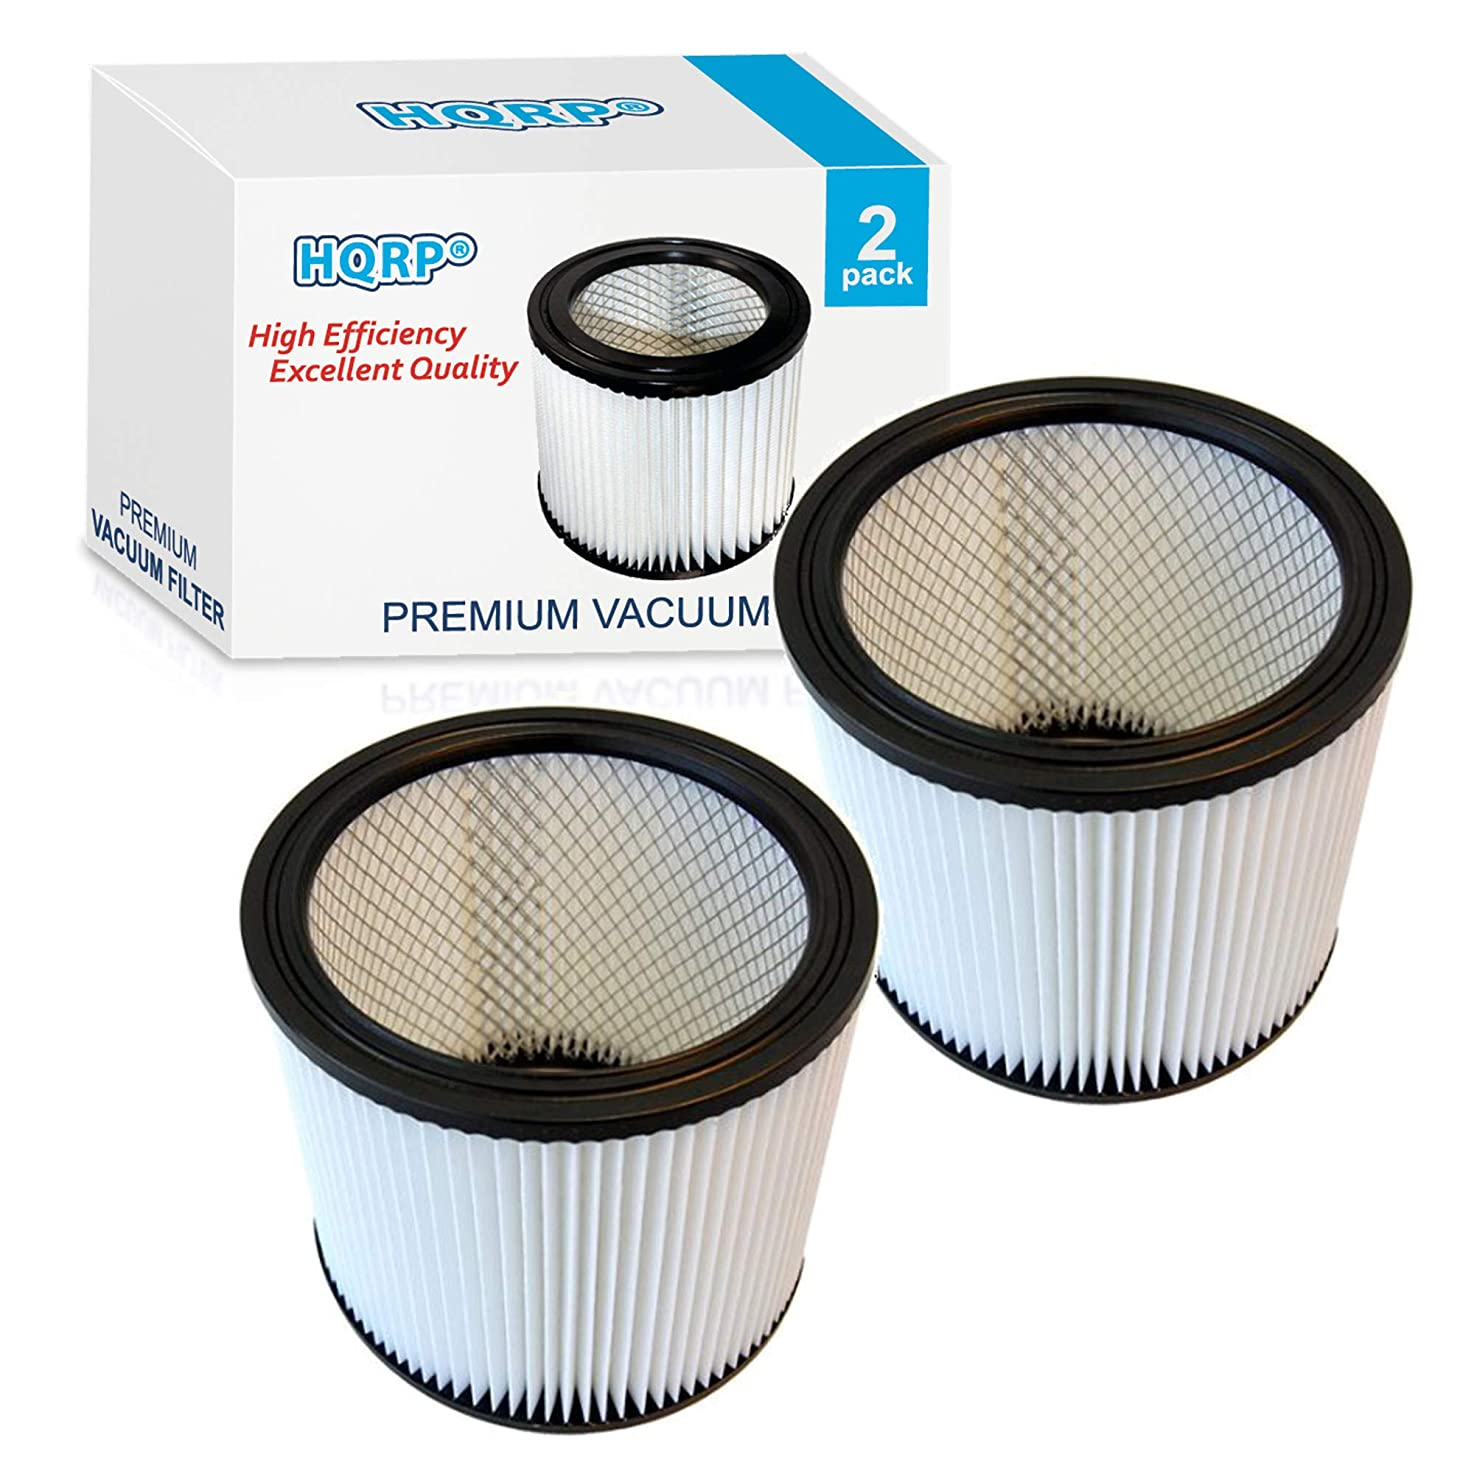 HQRP Cartridge Filter 2-Pack for Shop-Vac SL16-575A SS11-450 SS12-300A SS14-350A SS14-550A SS14-600C Vacuum Cleaner Coaster